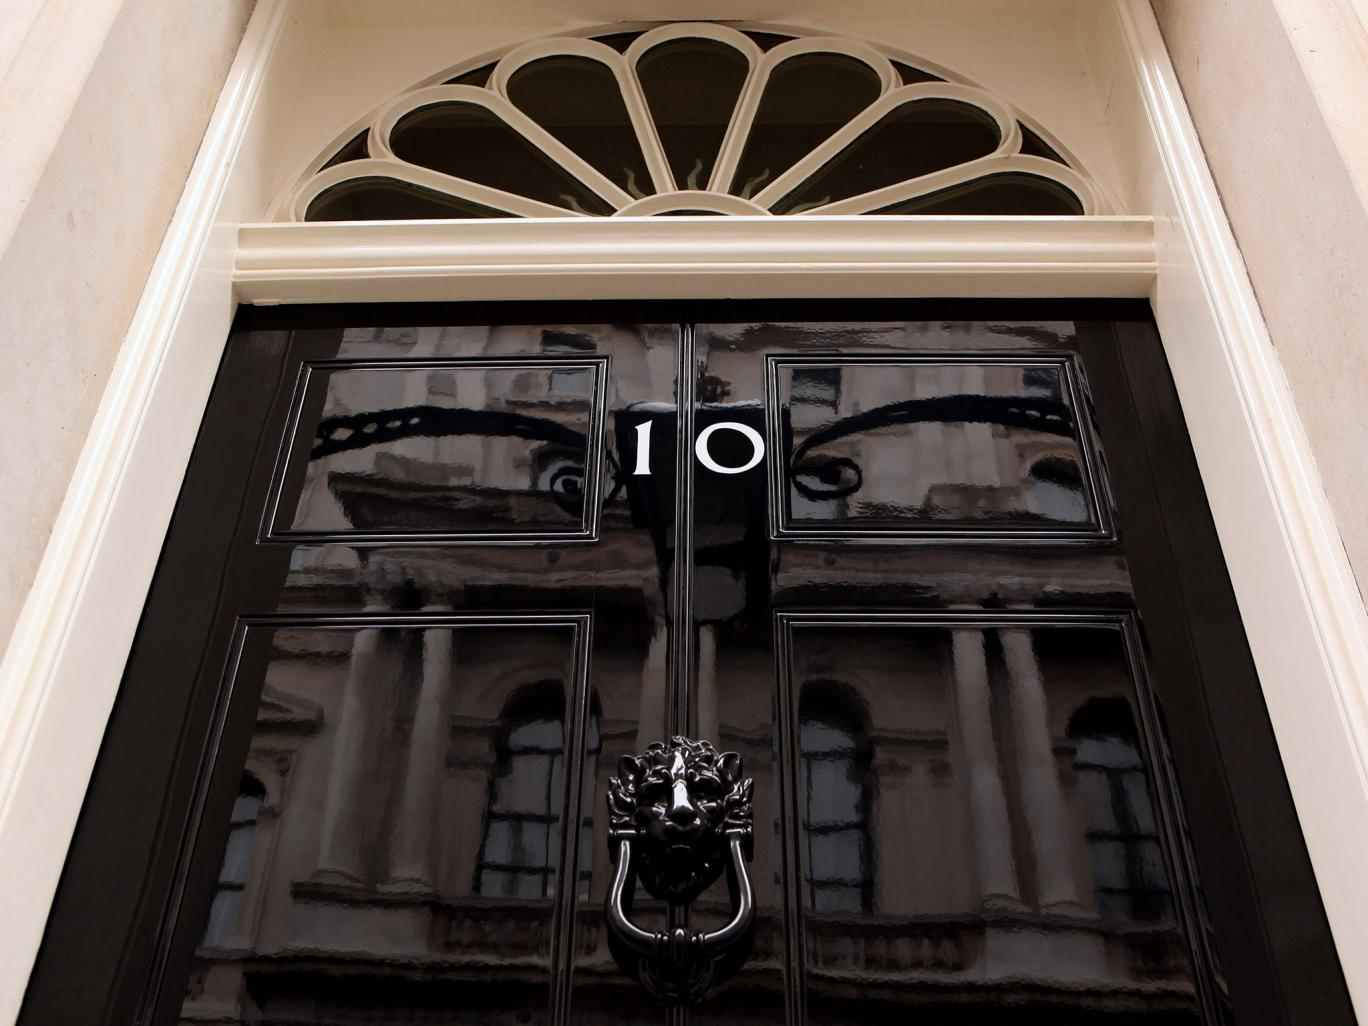 A hoax caller was put through to David Cameron&;s phone after claiming to be the director of eavesdropping agency GCHQ